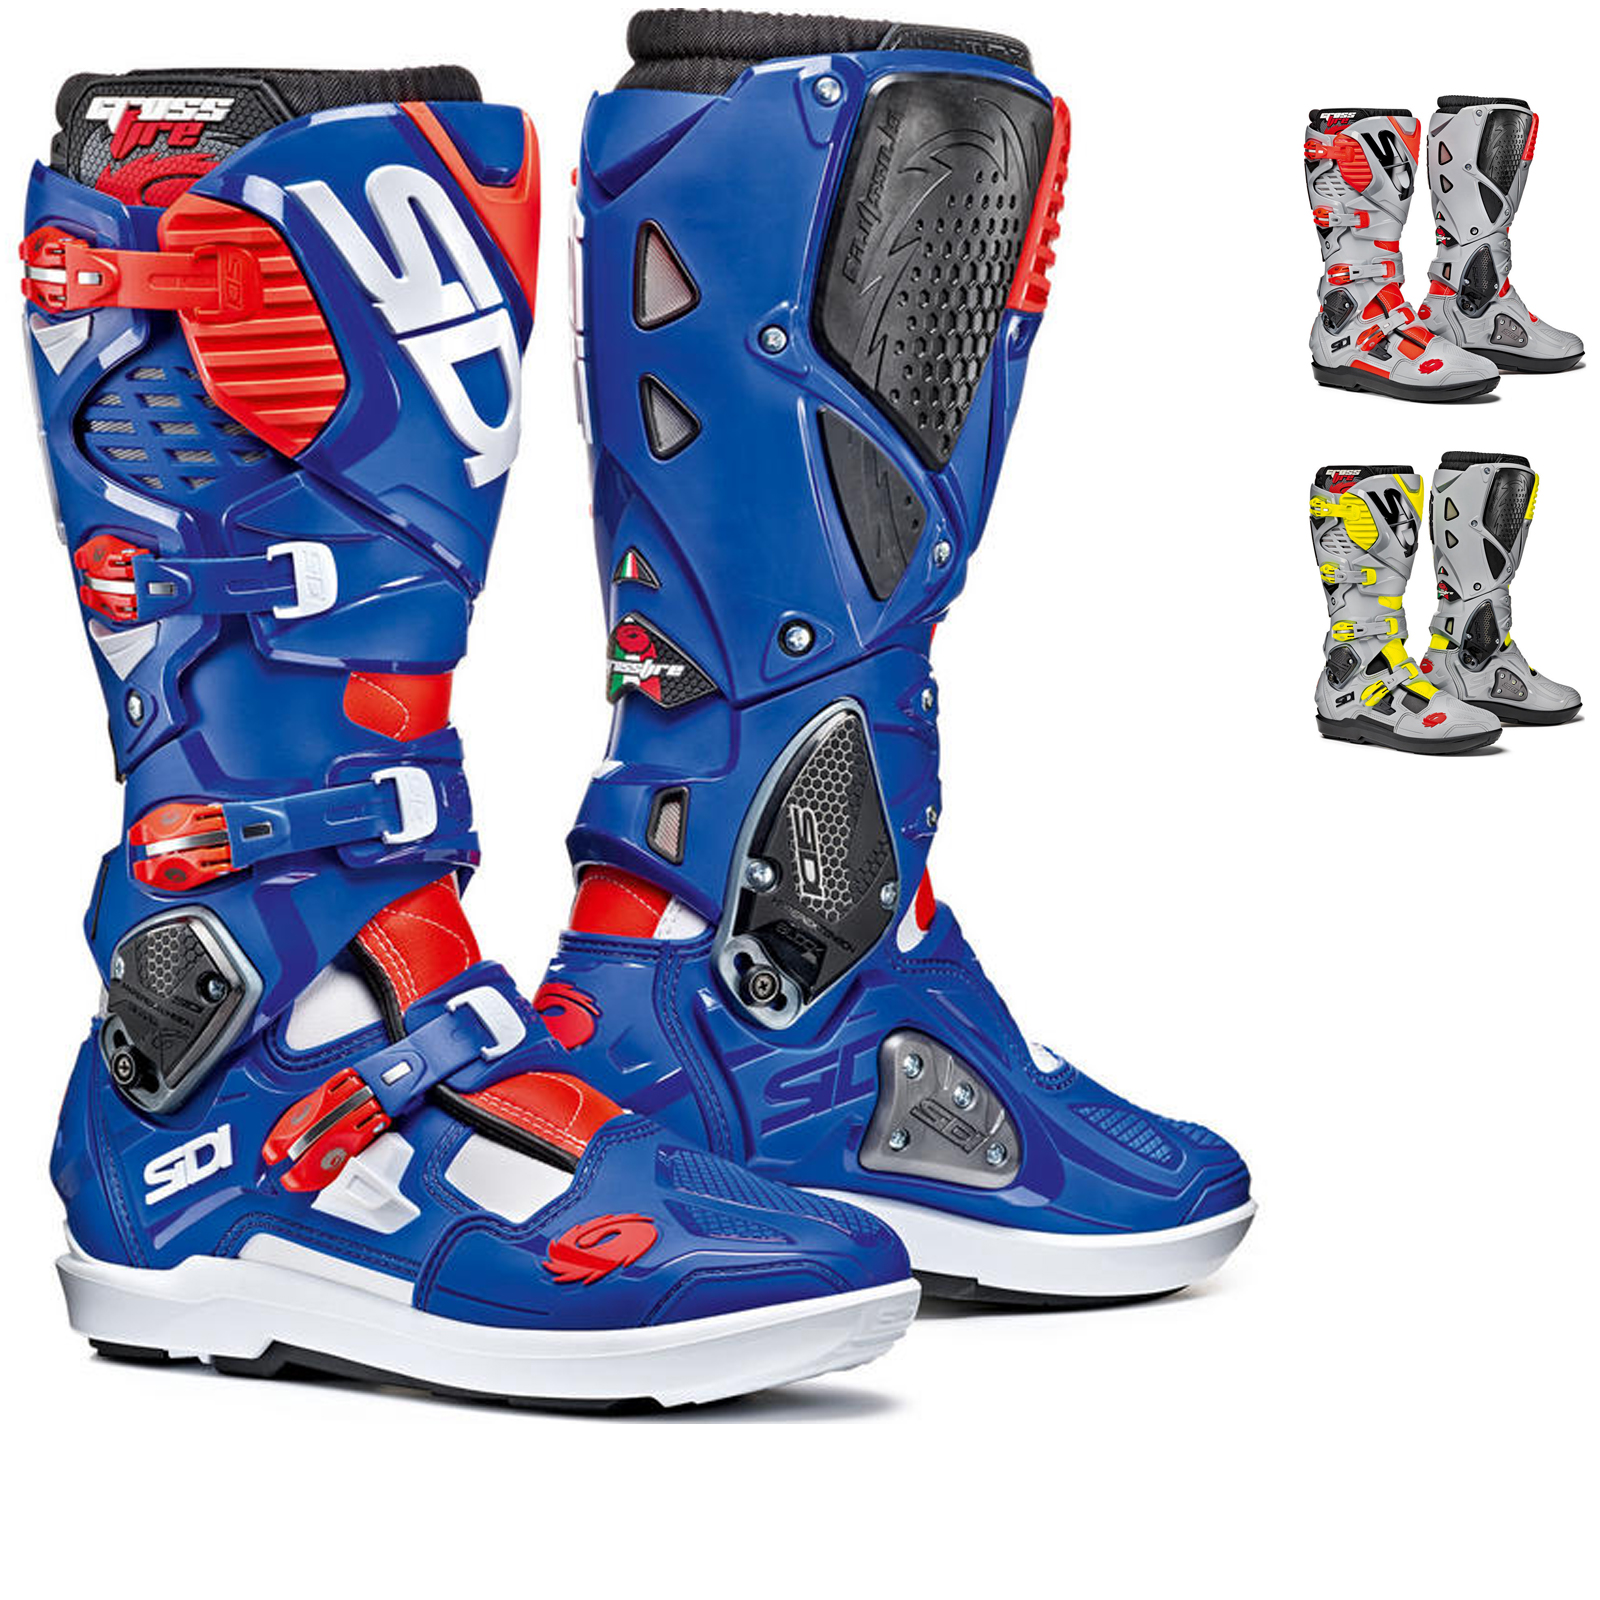 sidi crossfire 3 srs motocross boots motocross boots. Black Bedroom Furniture Sets. Home Design Ideas